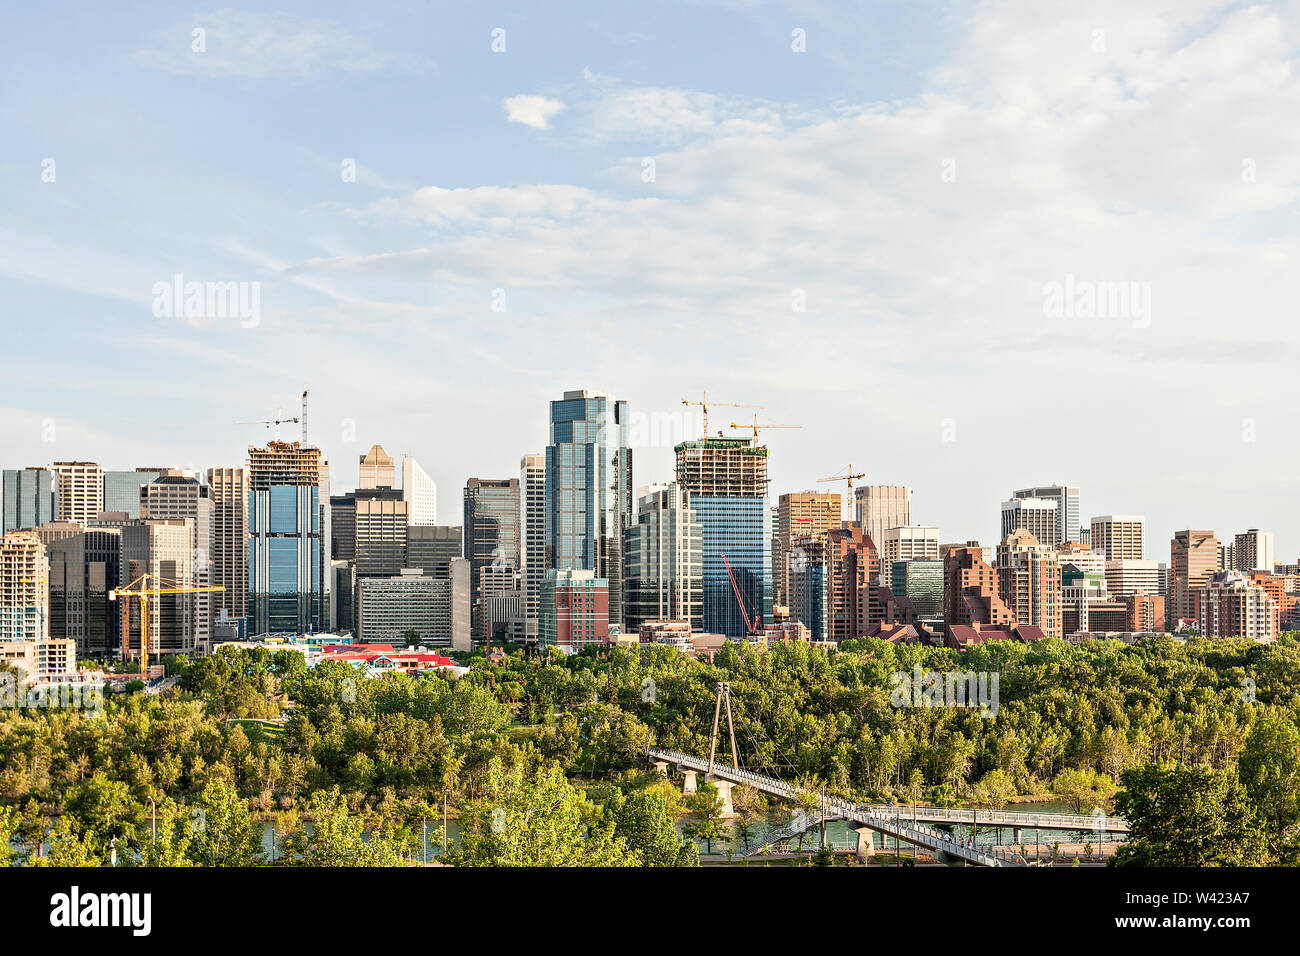 Luxury city with huge buildings and forest, sky has white clouds, long bridge can see near jungle, morning time or evening city view. - Stock Image